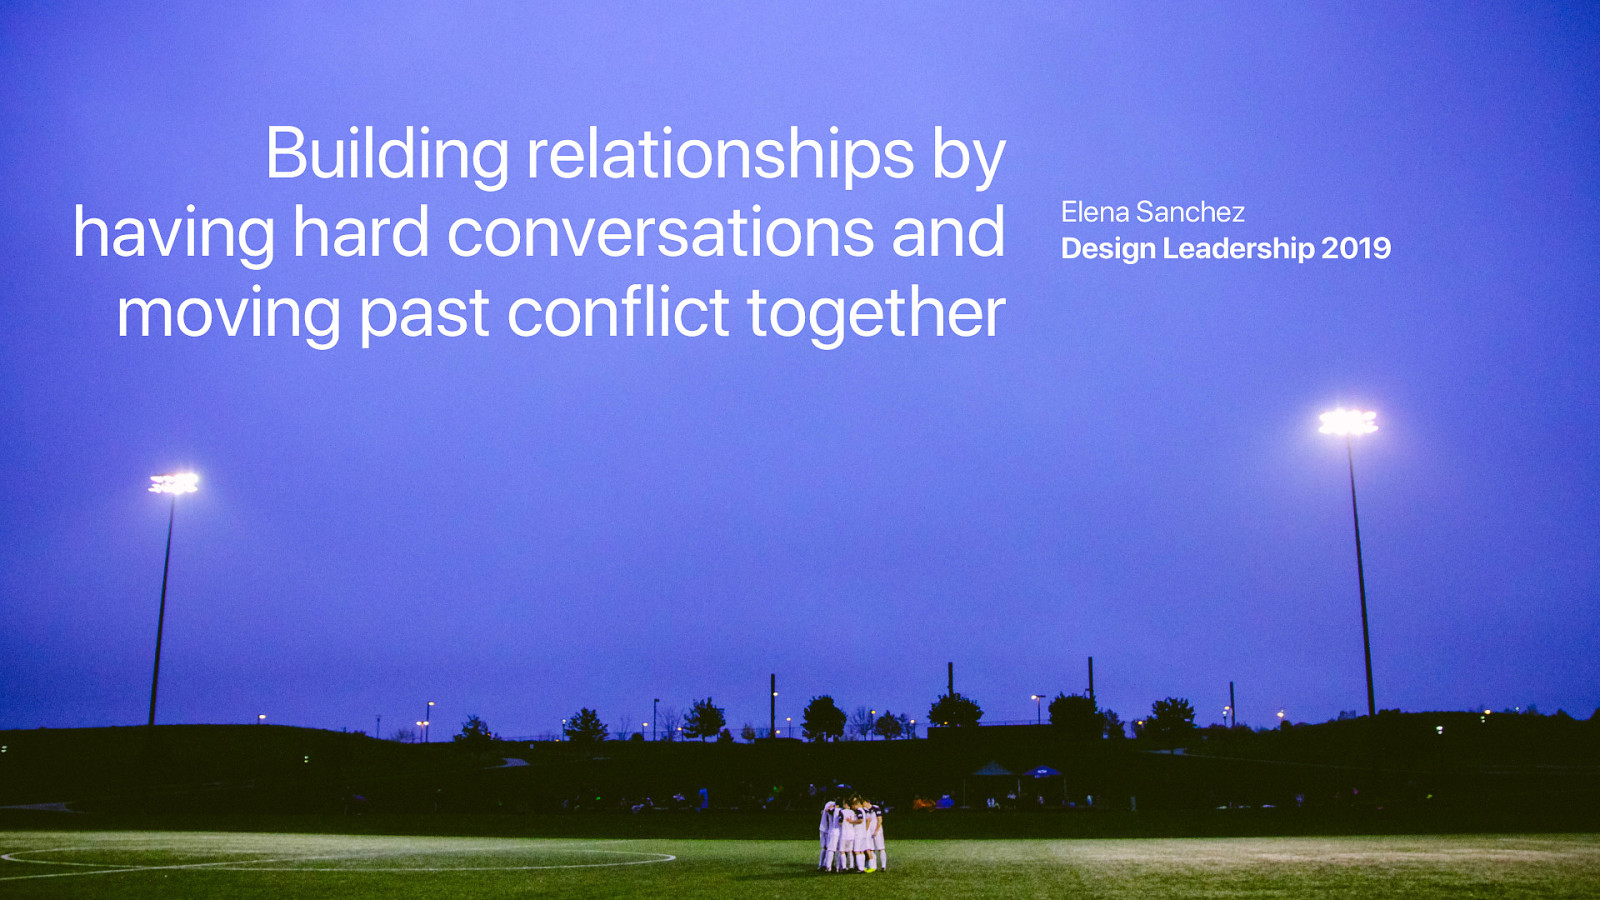 Building relationships by having hard conversations and moving past conflict together